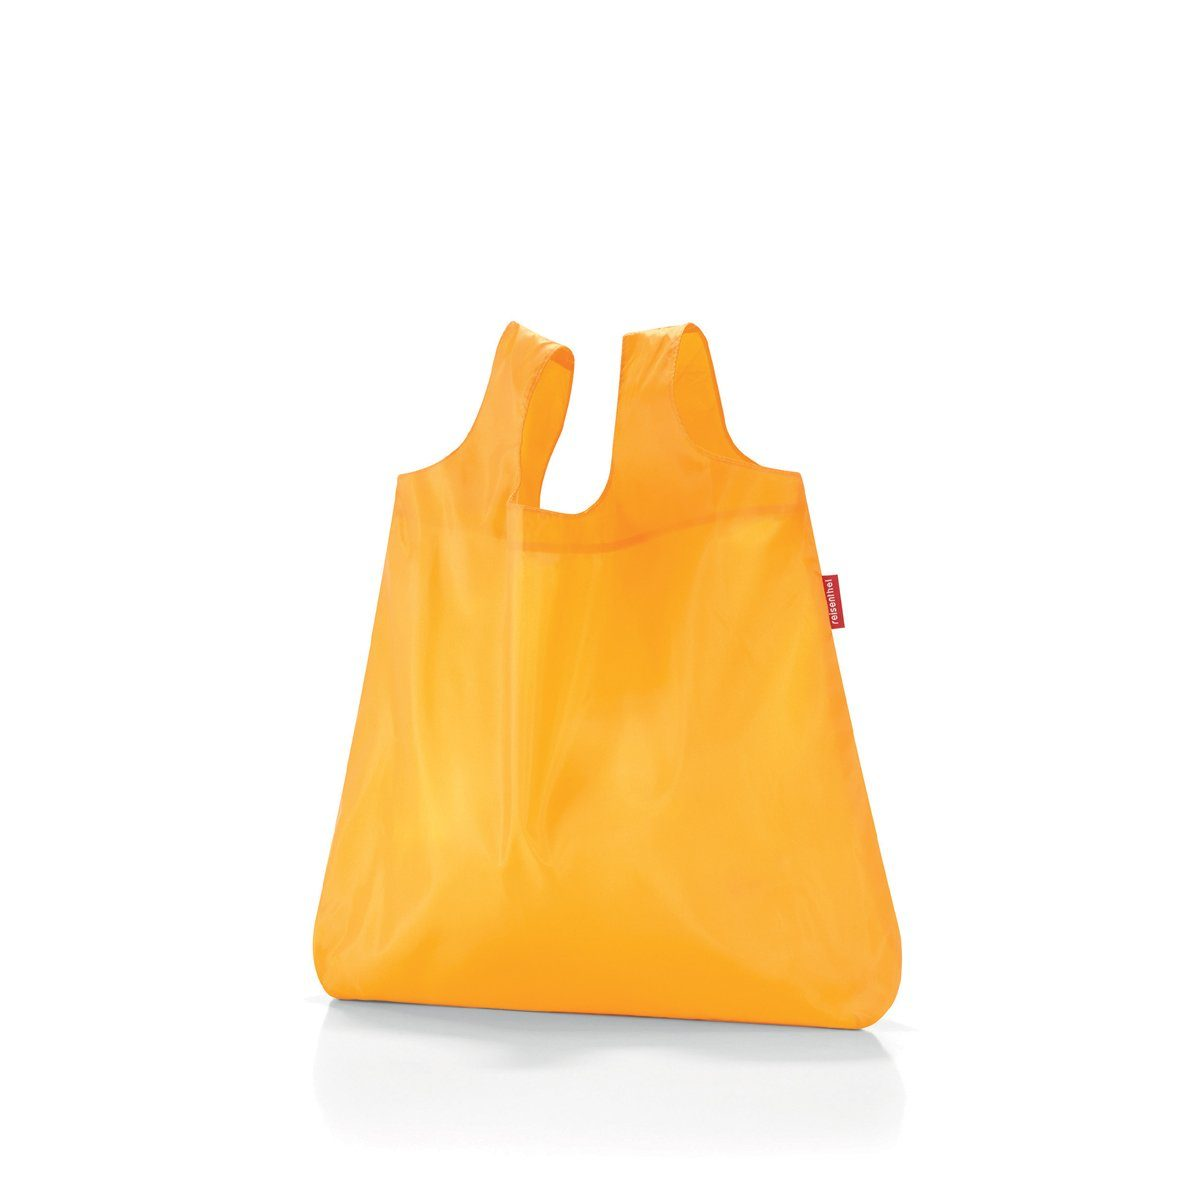 Reisenthel® Reisenthel MINI MAXI SHOPPER old style yellow